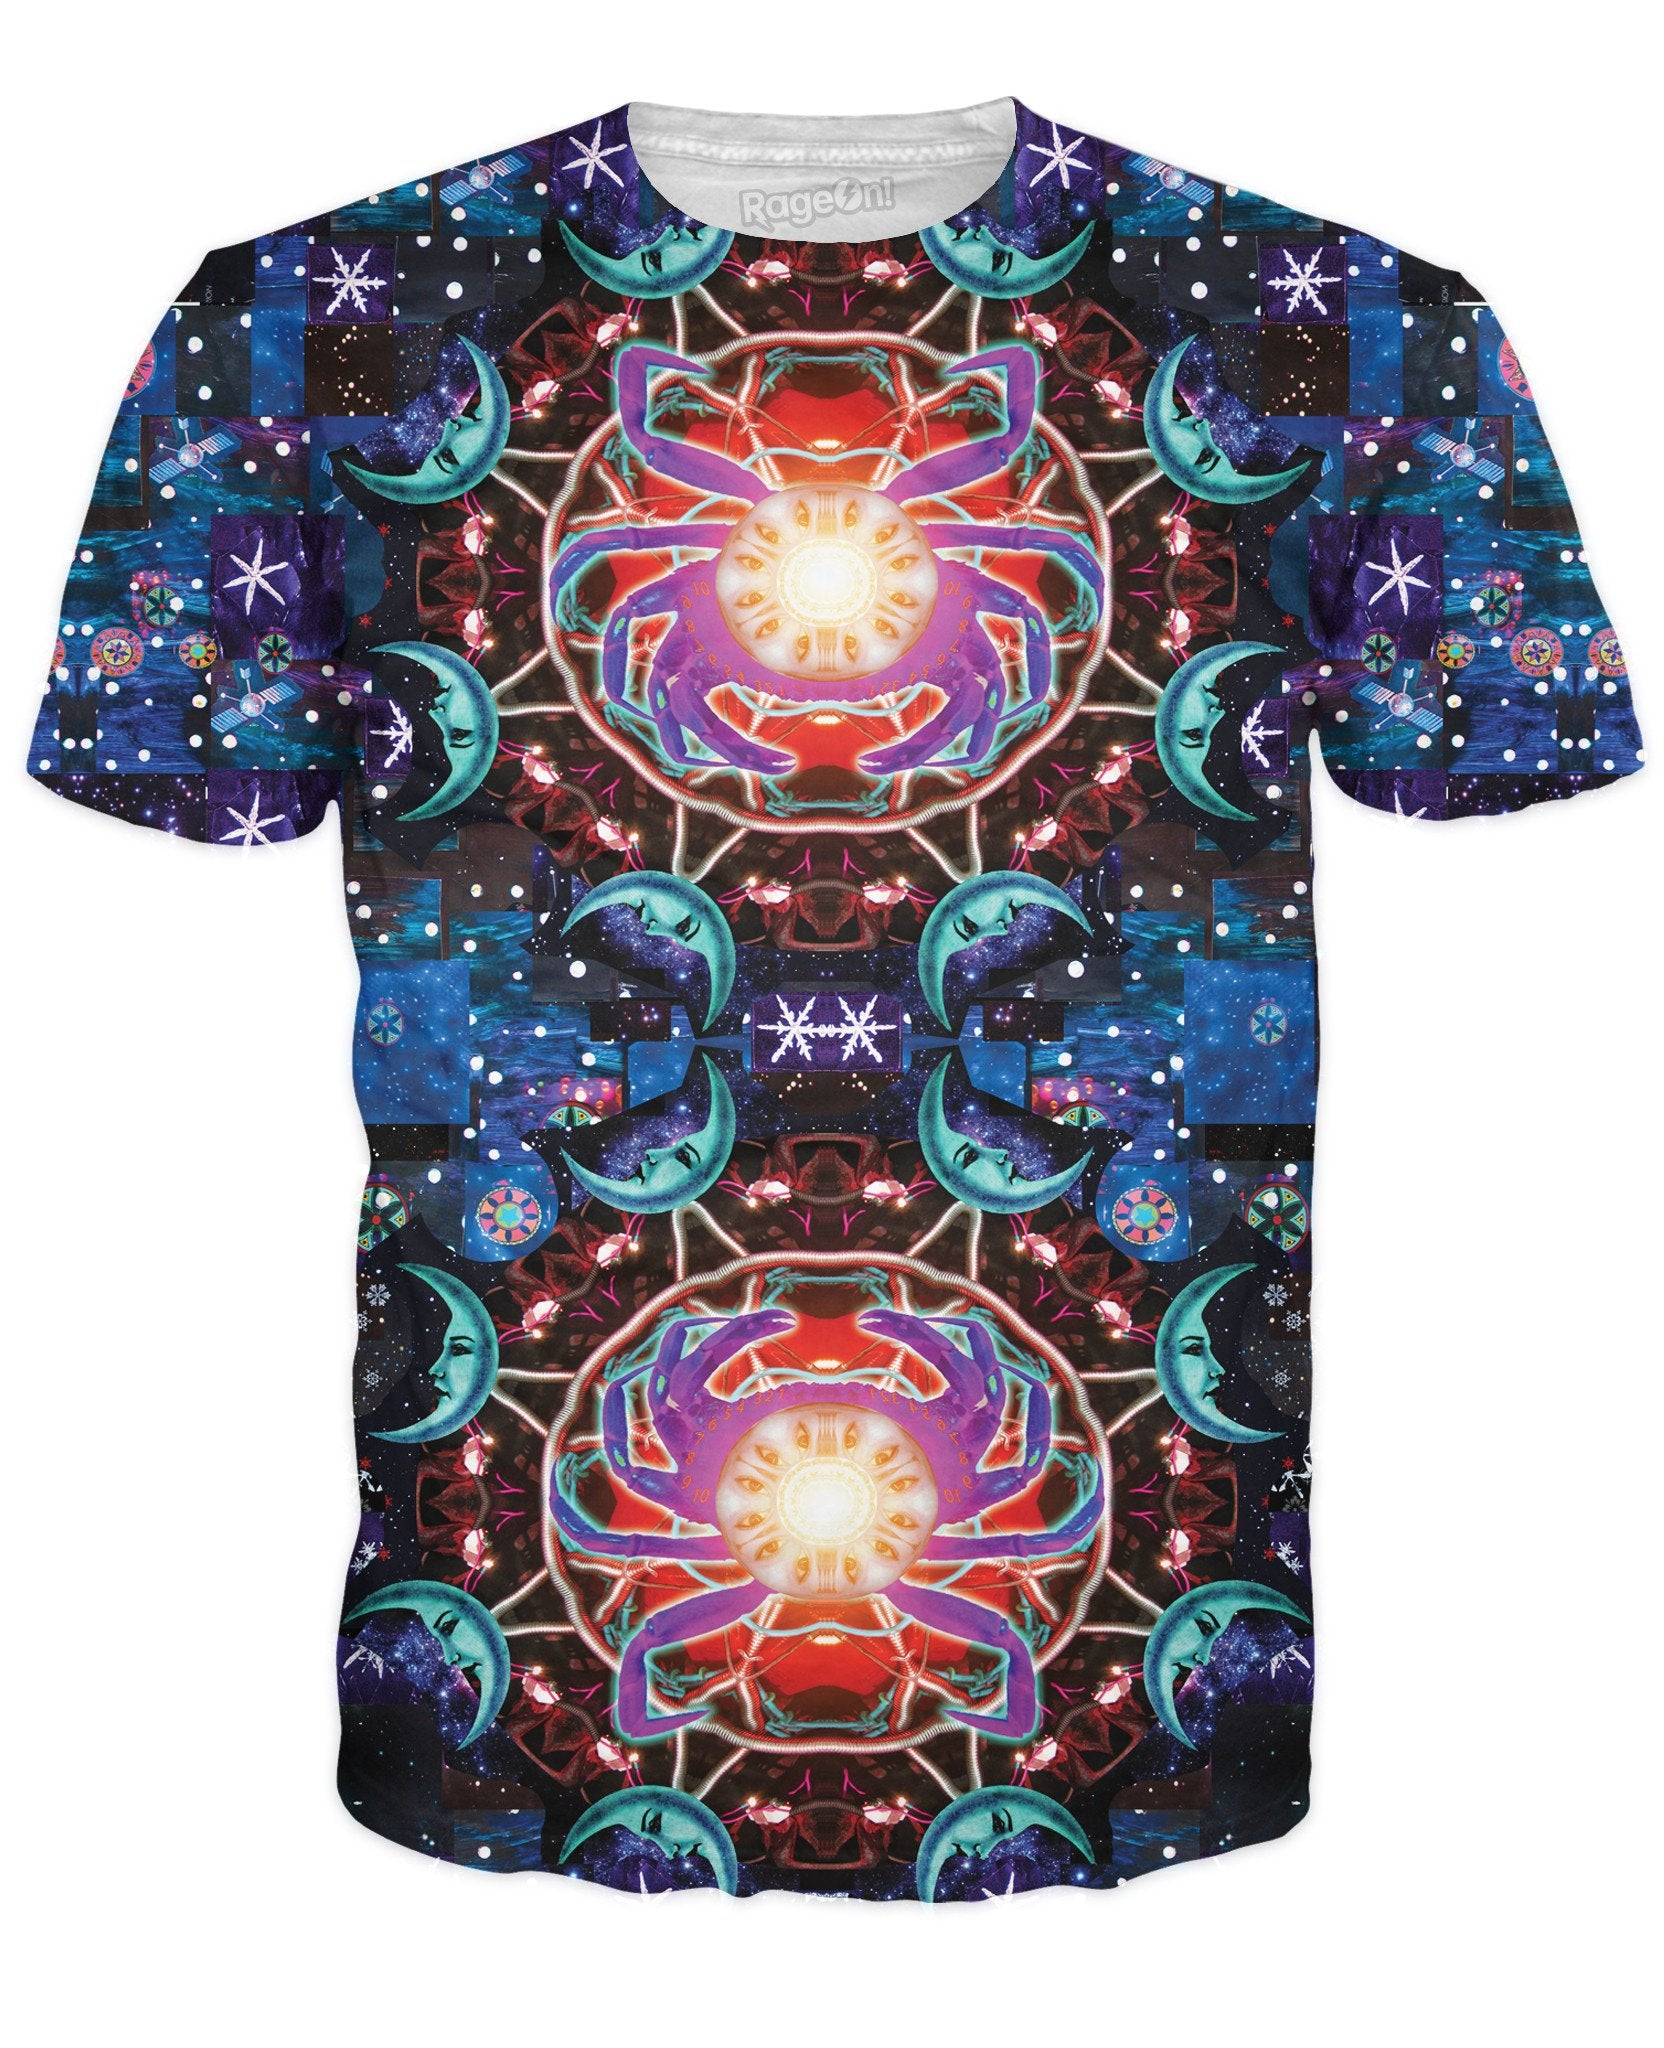 Crab Nebula Supernova T-Shirt - TShirtsRUS.co